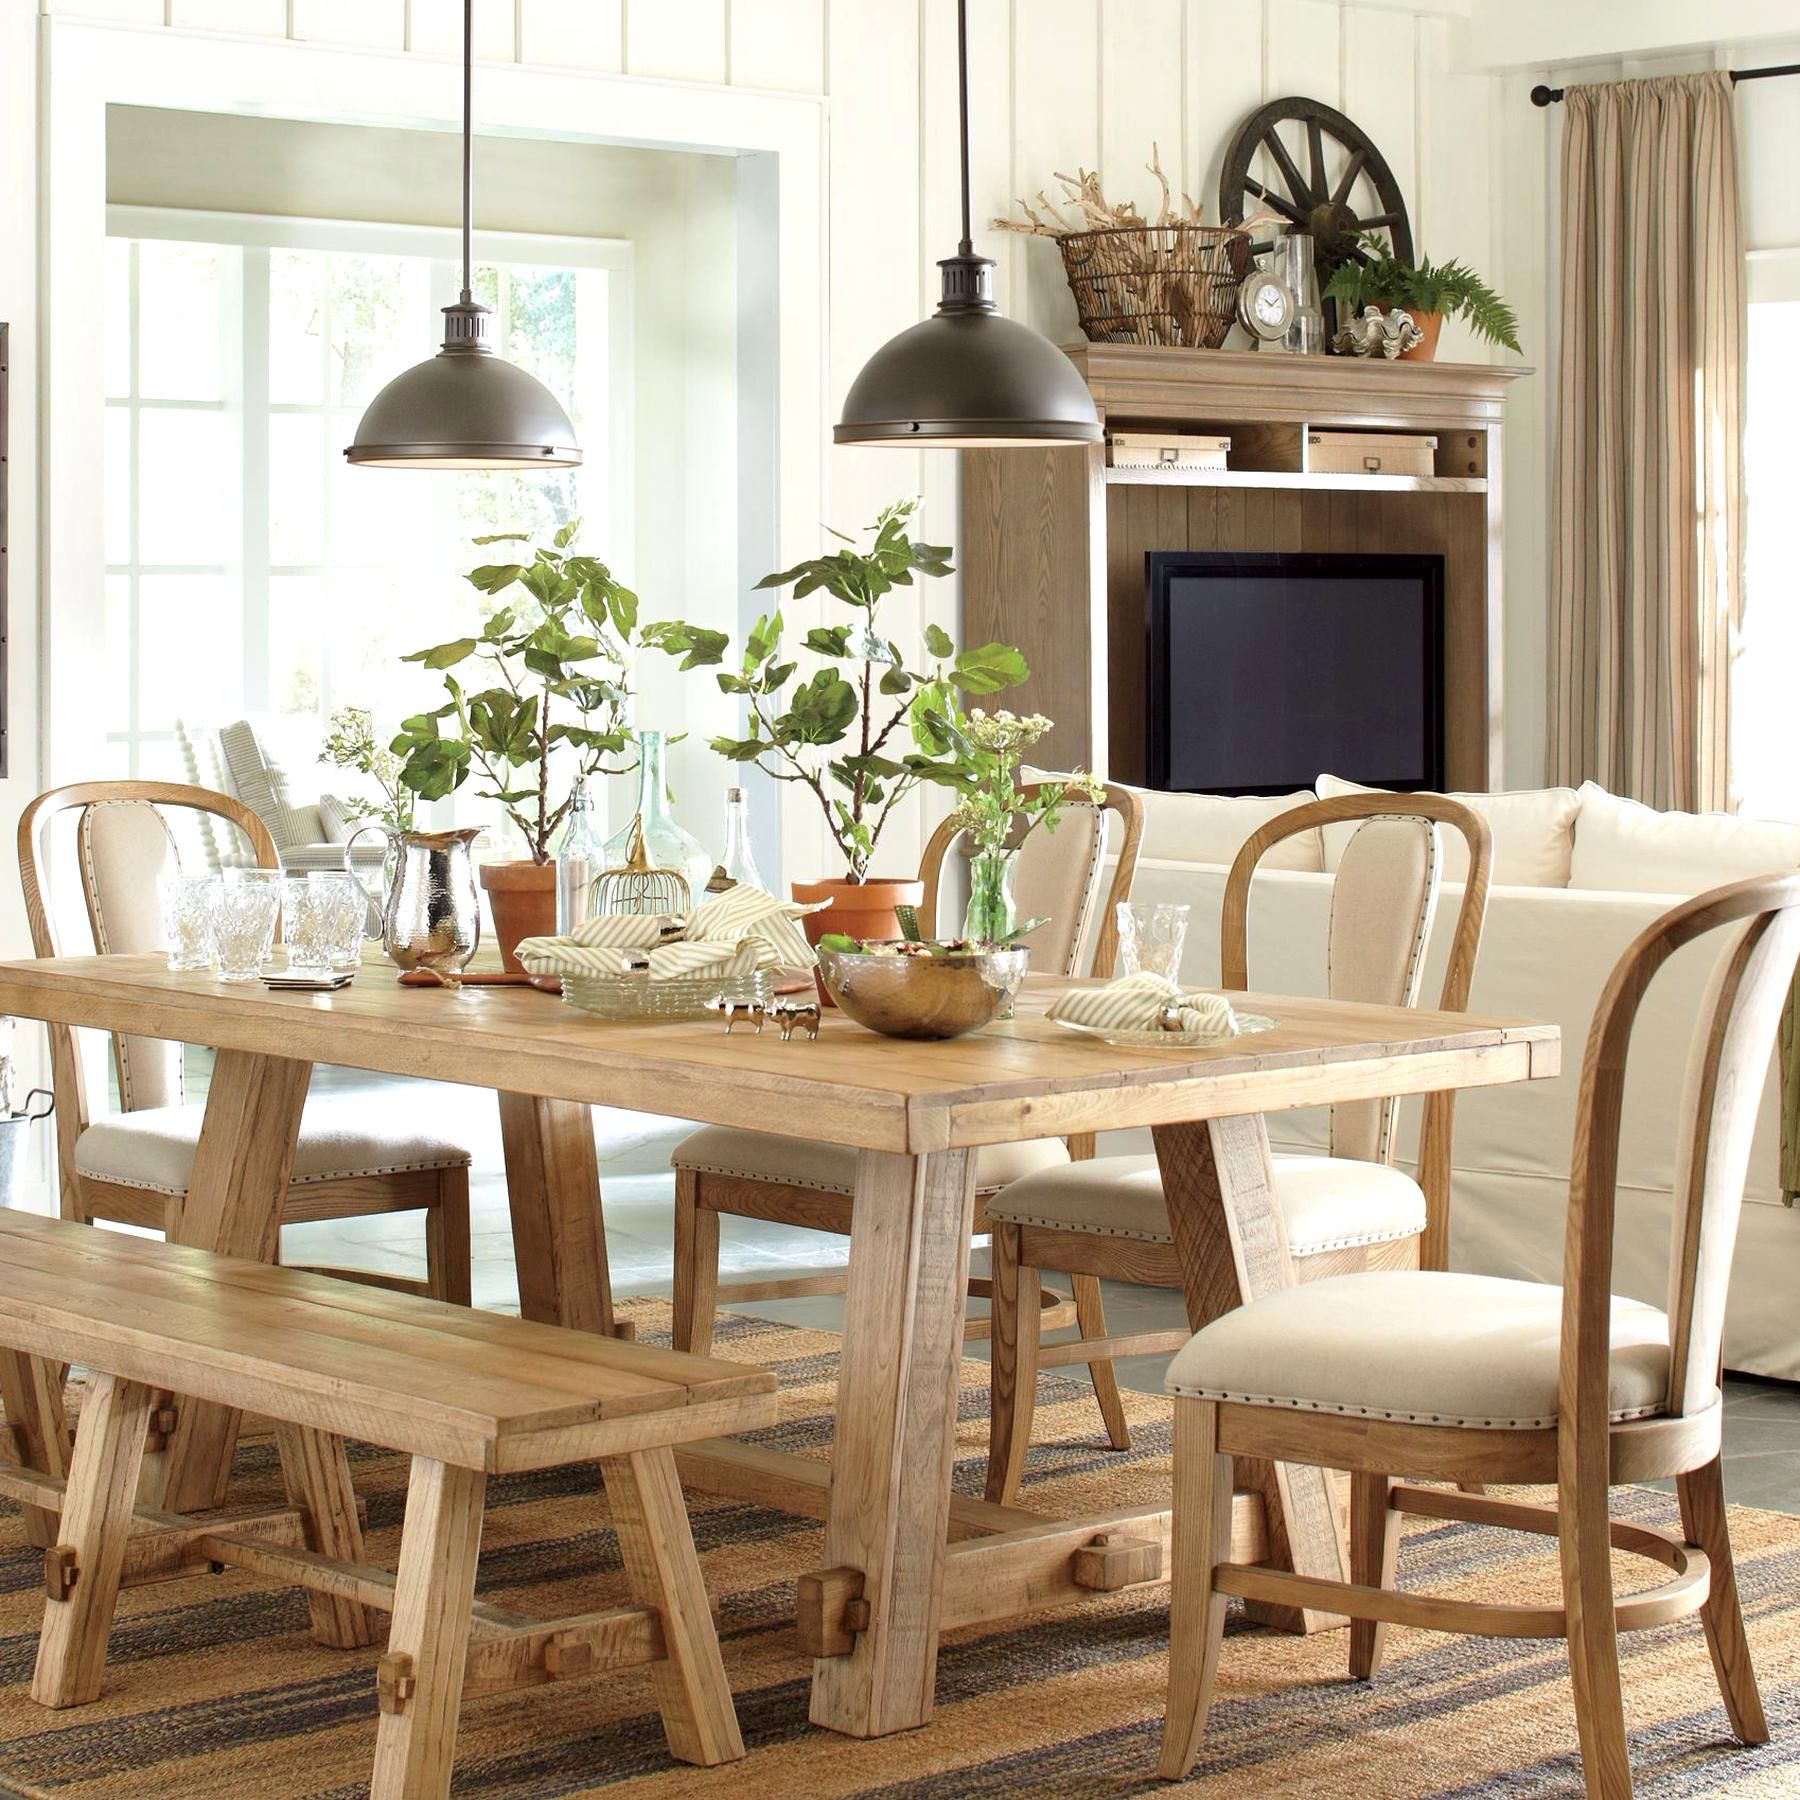 Orleans Pendant in 9  Dining table, Dining table in kitchen